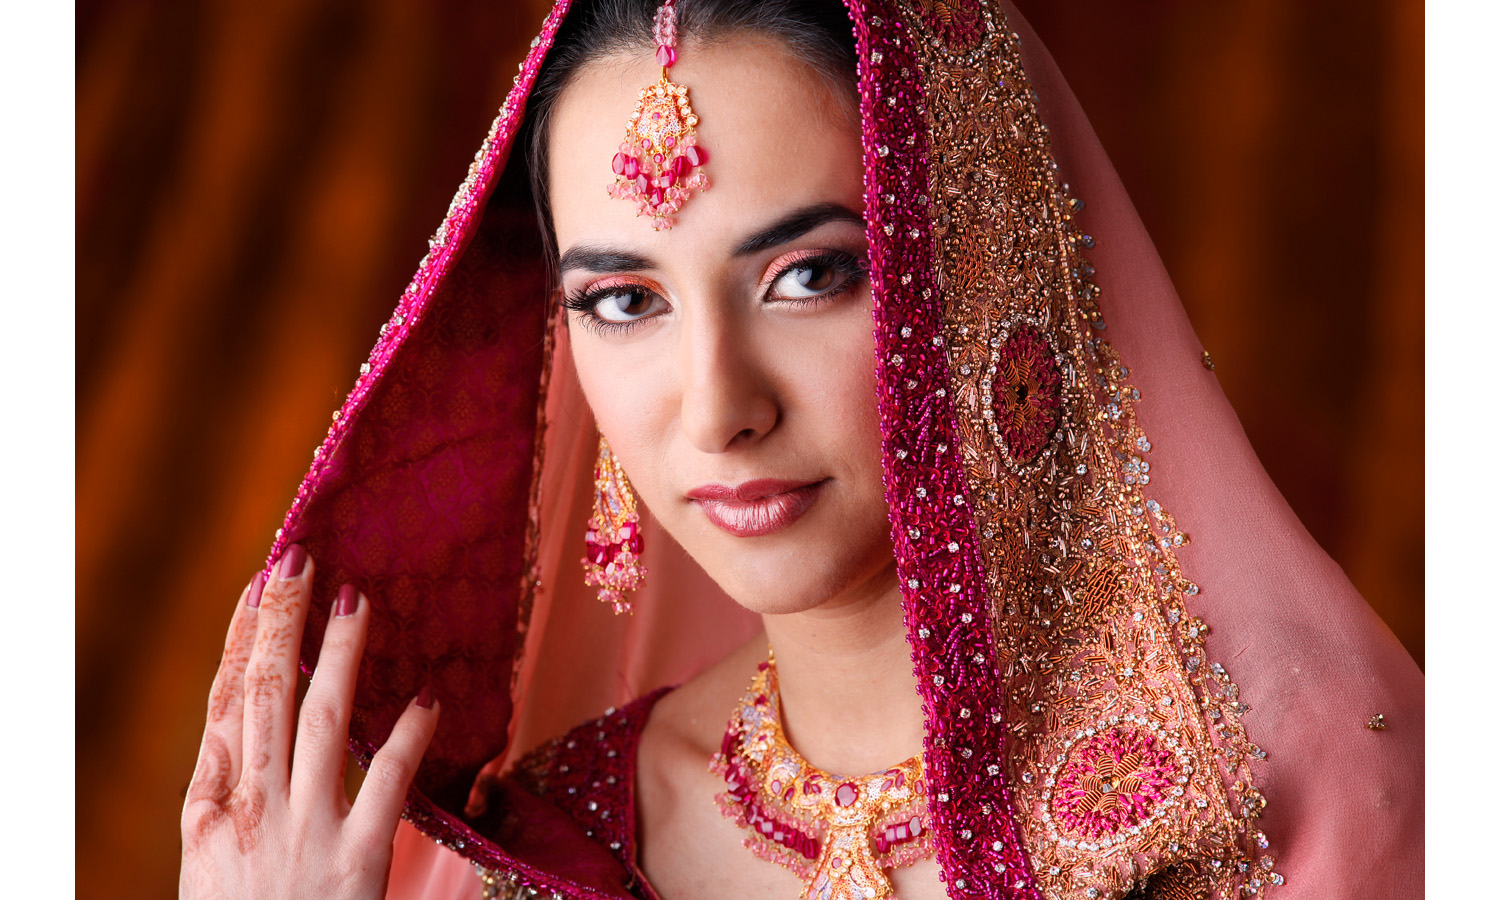 Indian beauty portrait